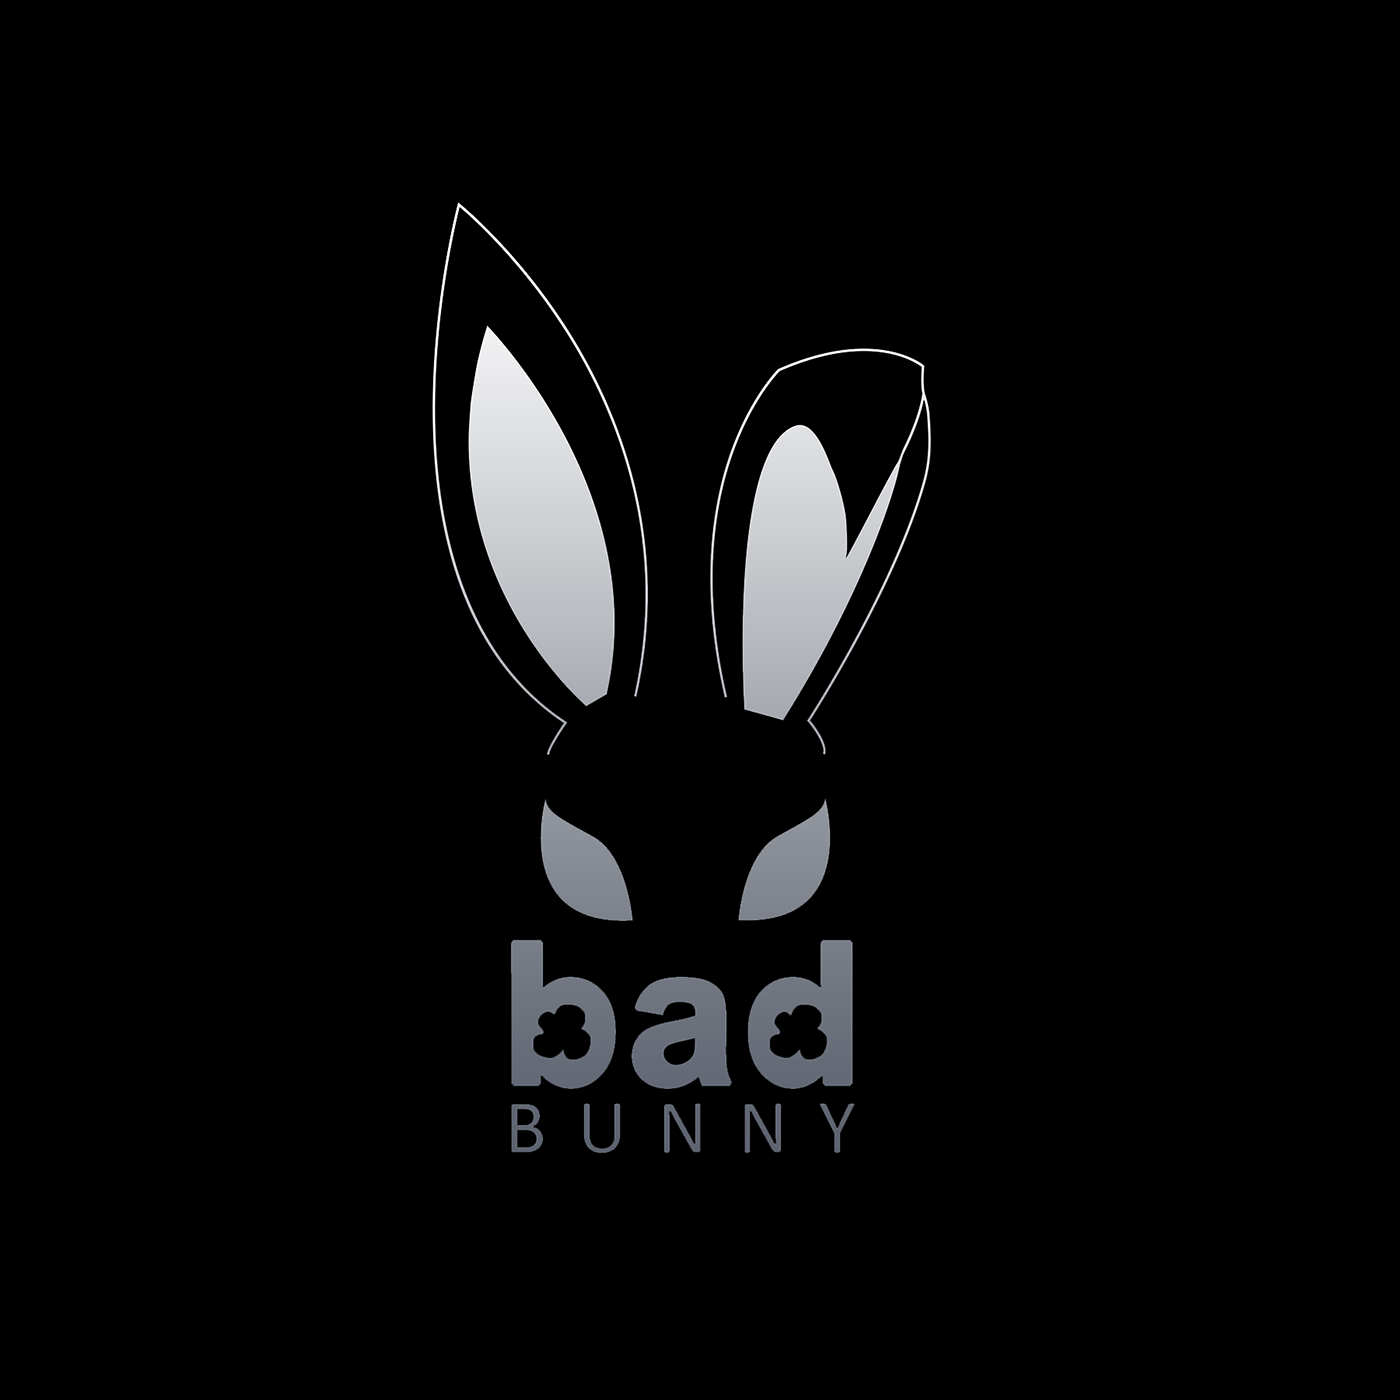 Bad Bunny Logo / Shop top fashion brands hoodies at amazon.com ✓ free delivery and returns possible on eligible purchases.